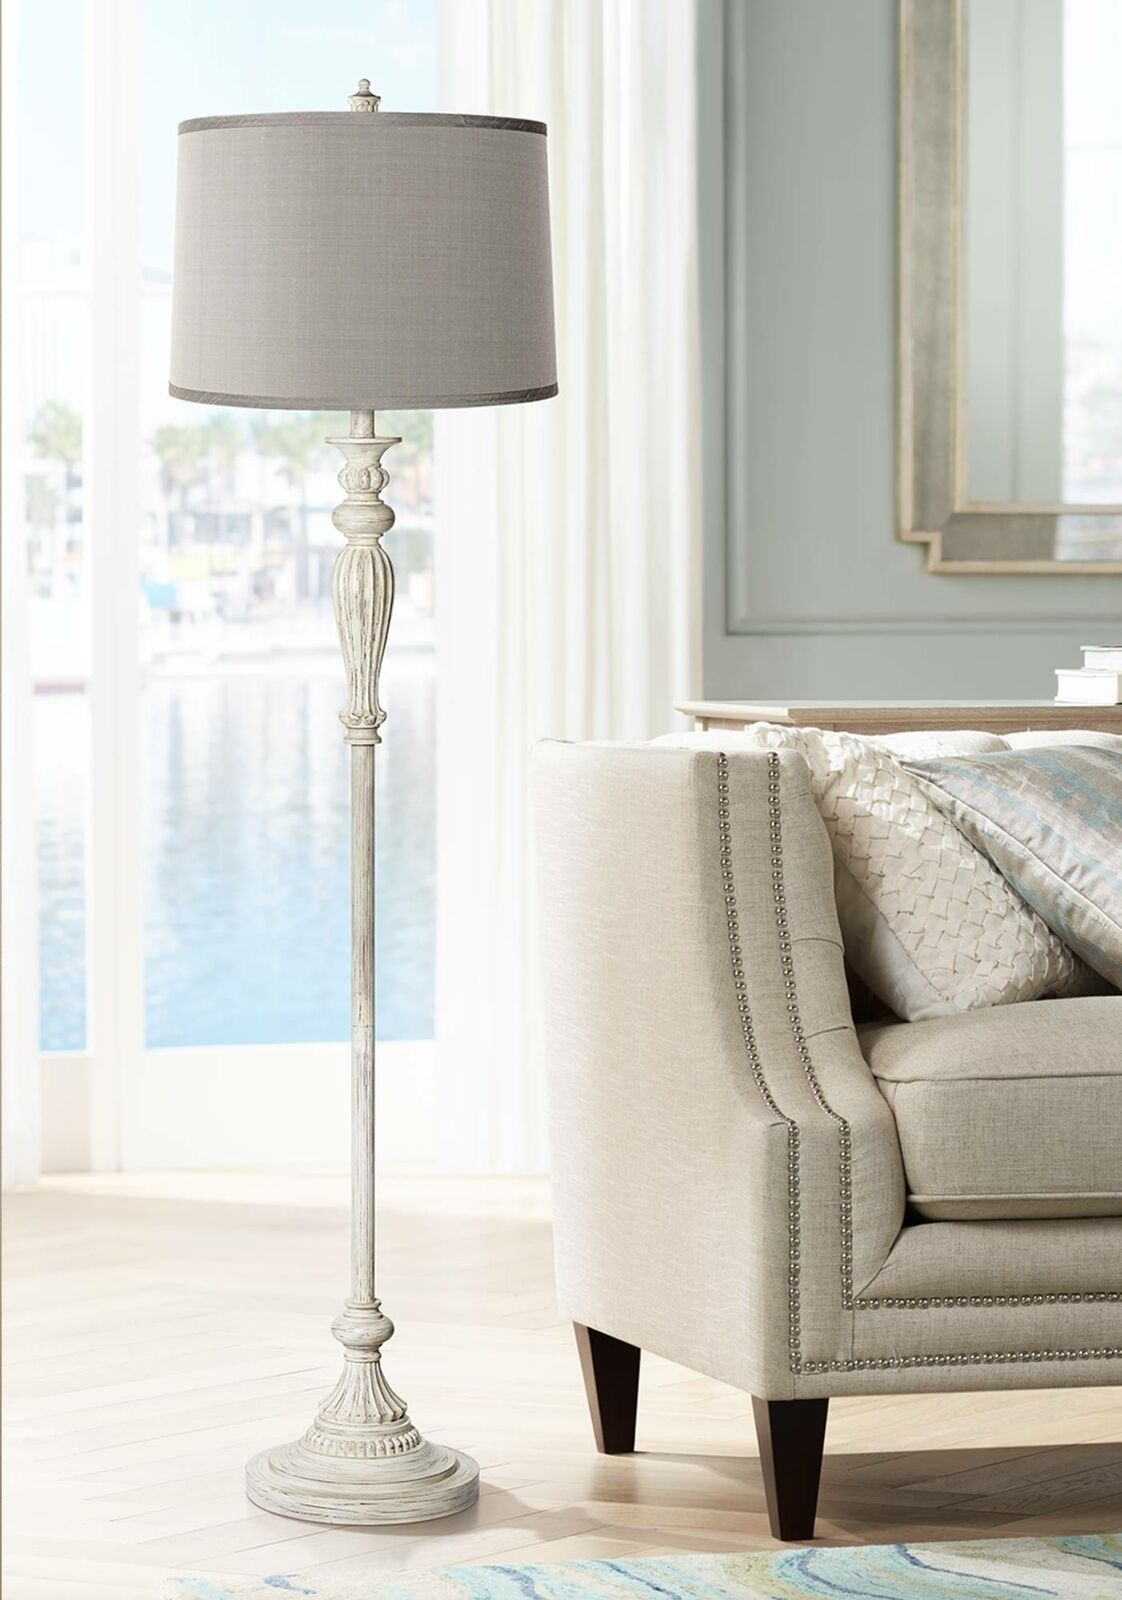 Details About Shabby Chic Floor Lamp Antique White Platinum Gray